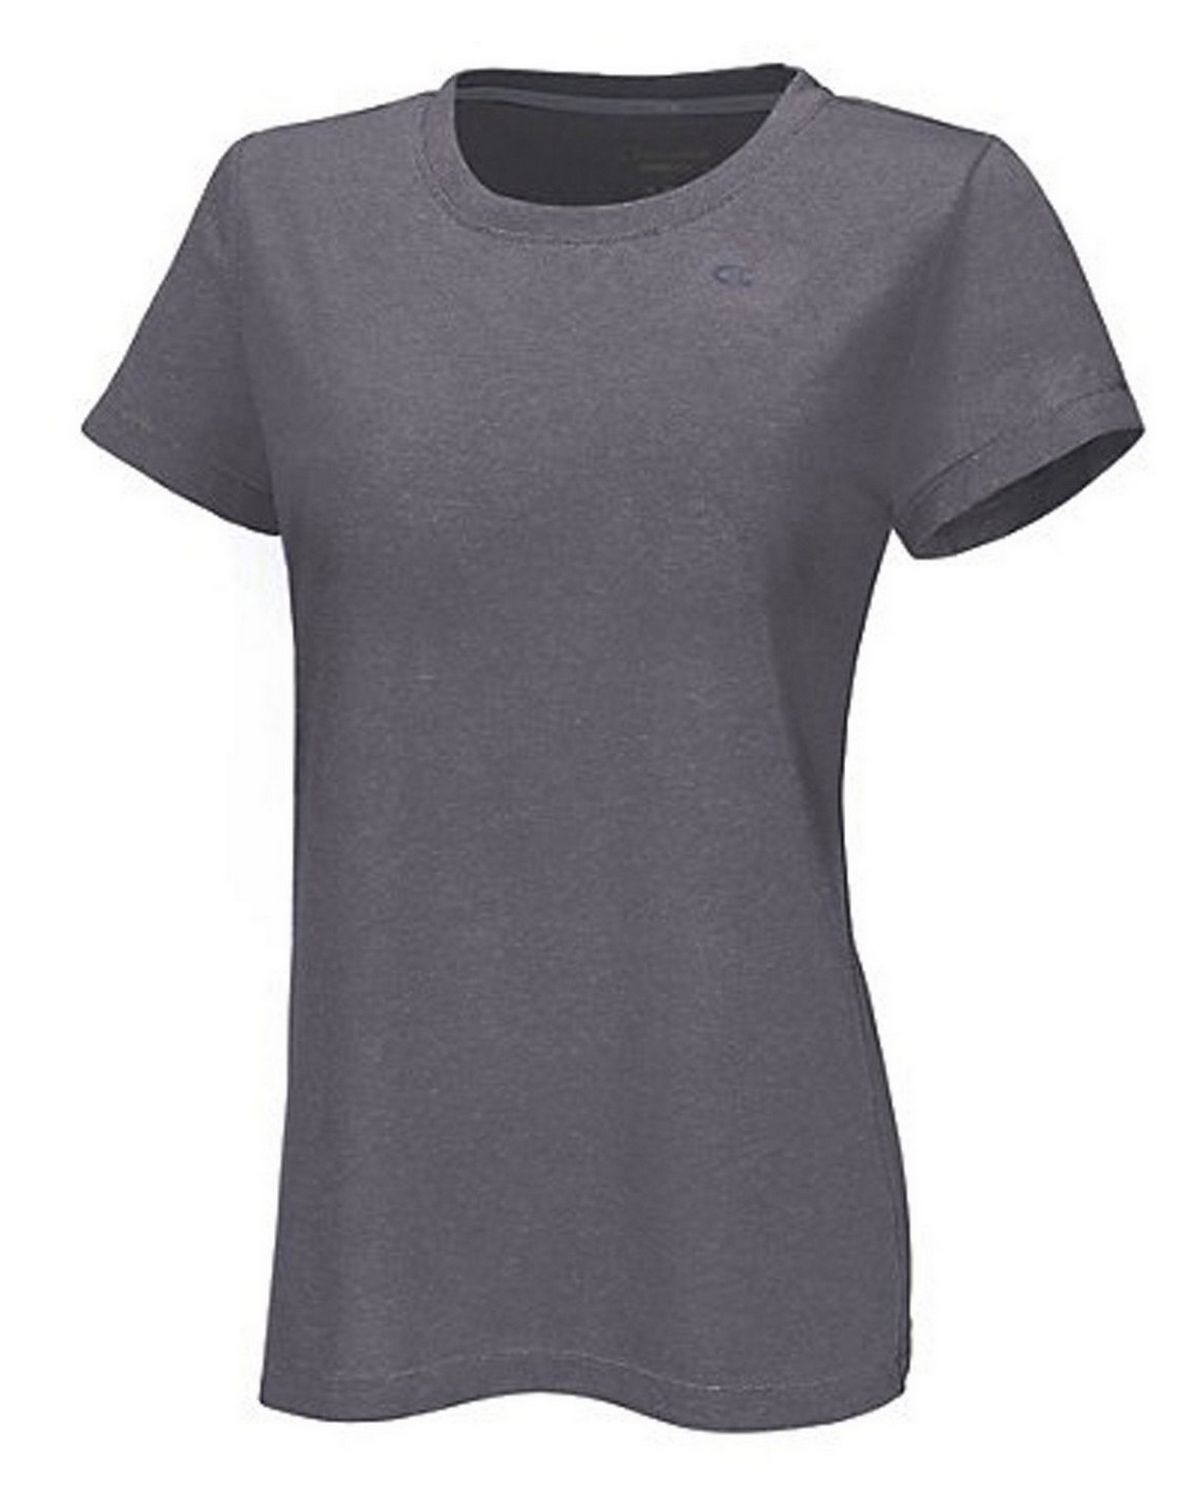 Champion 7963 Vapor PowerTrain Short Sleeve Heather Tee - Granite Heather - L 7963